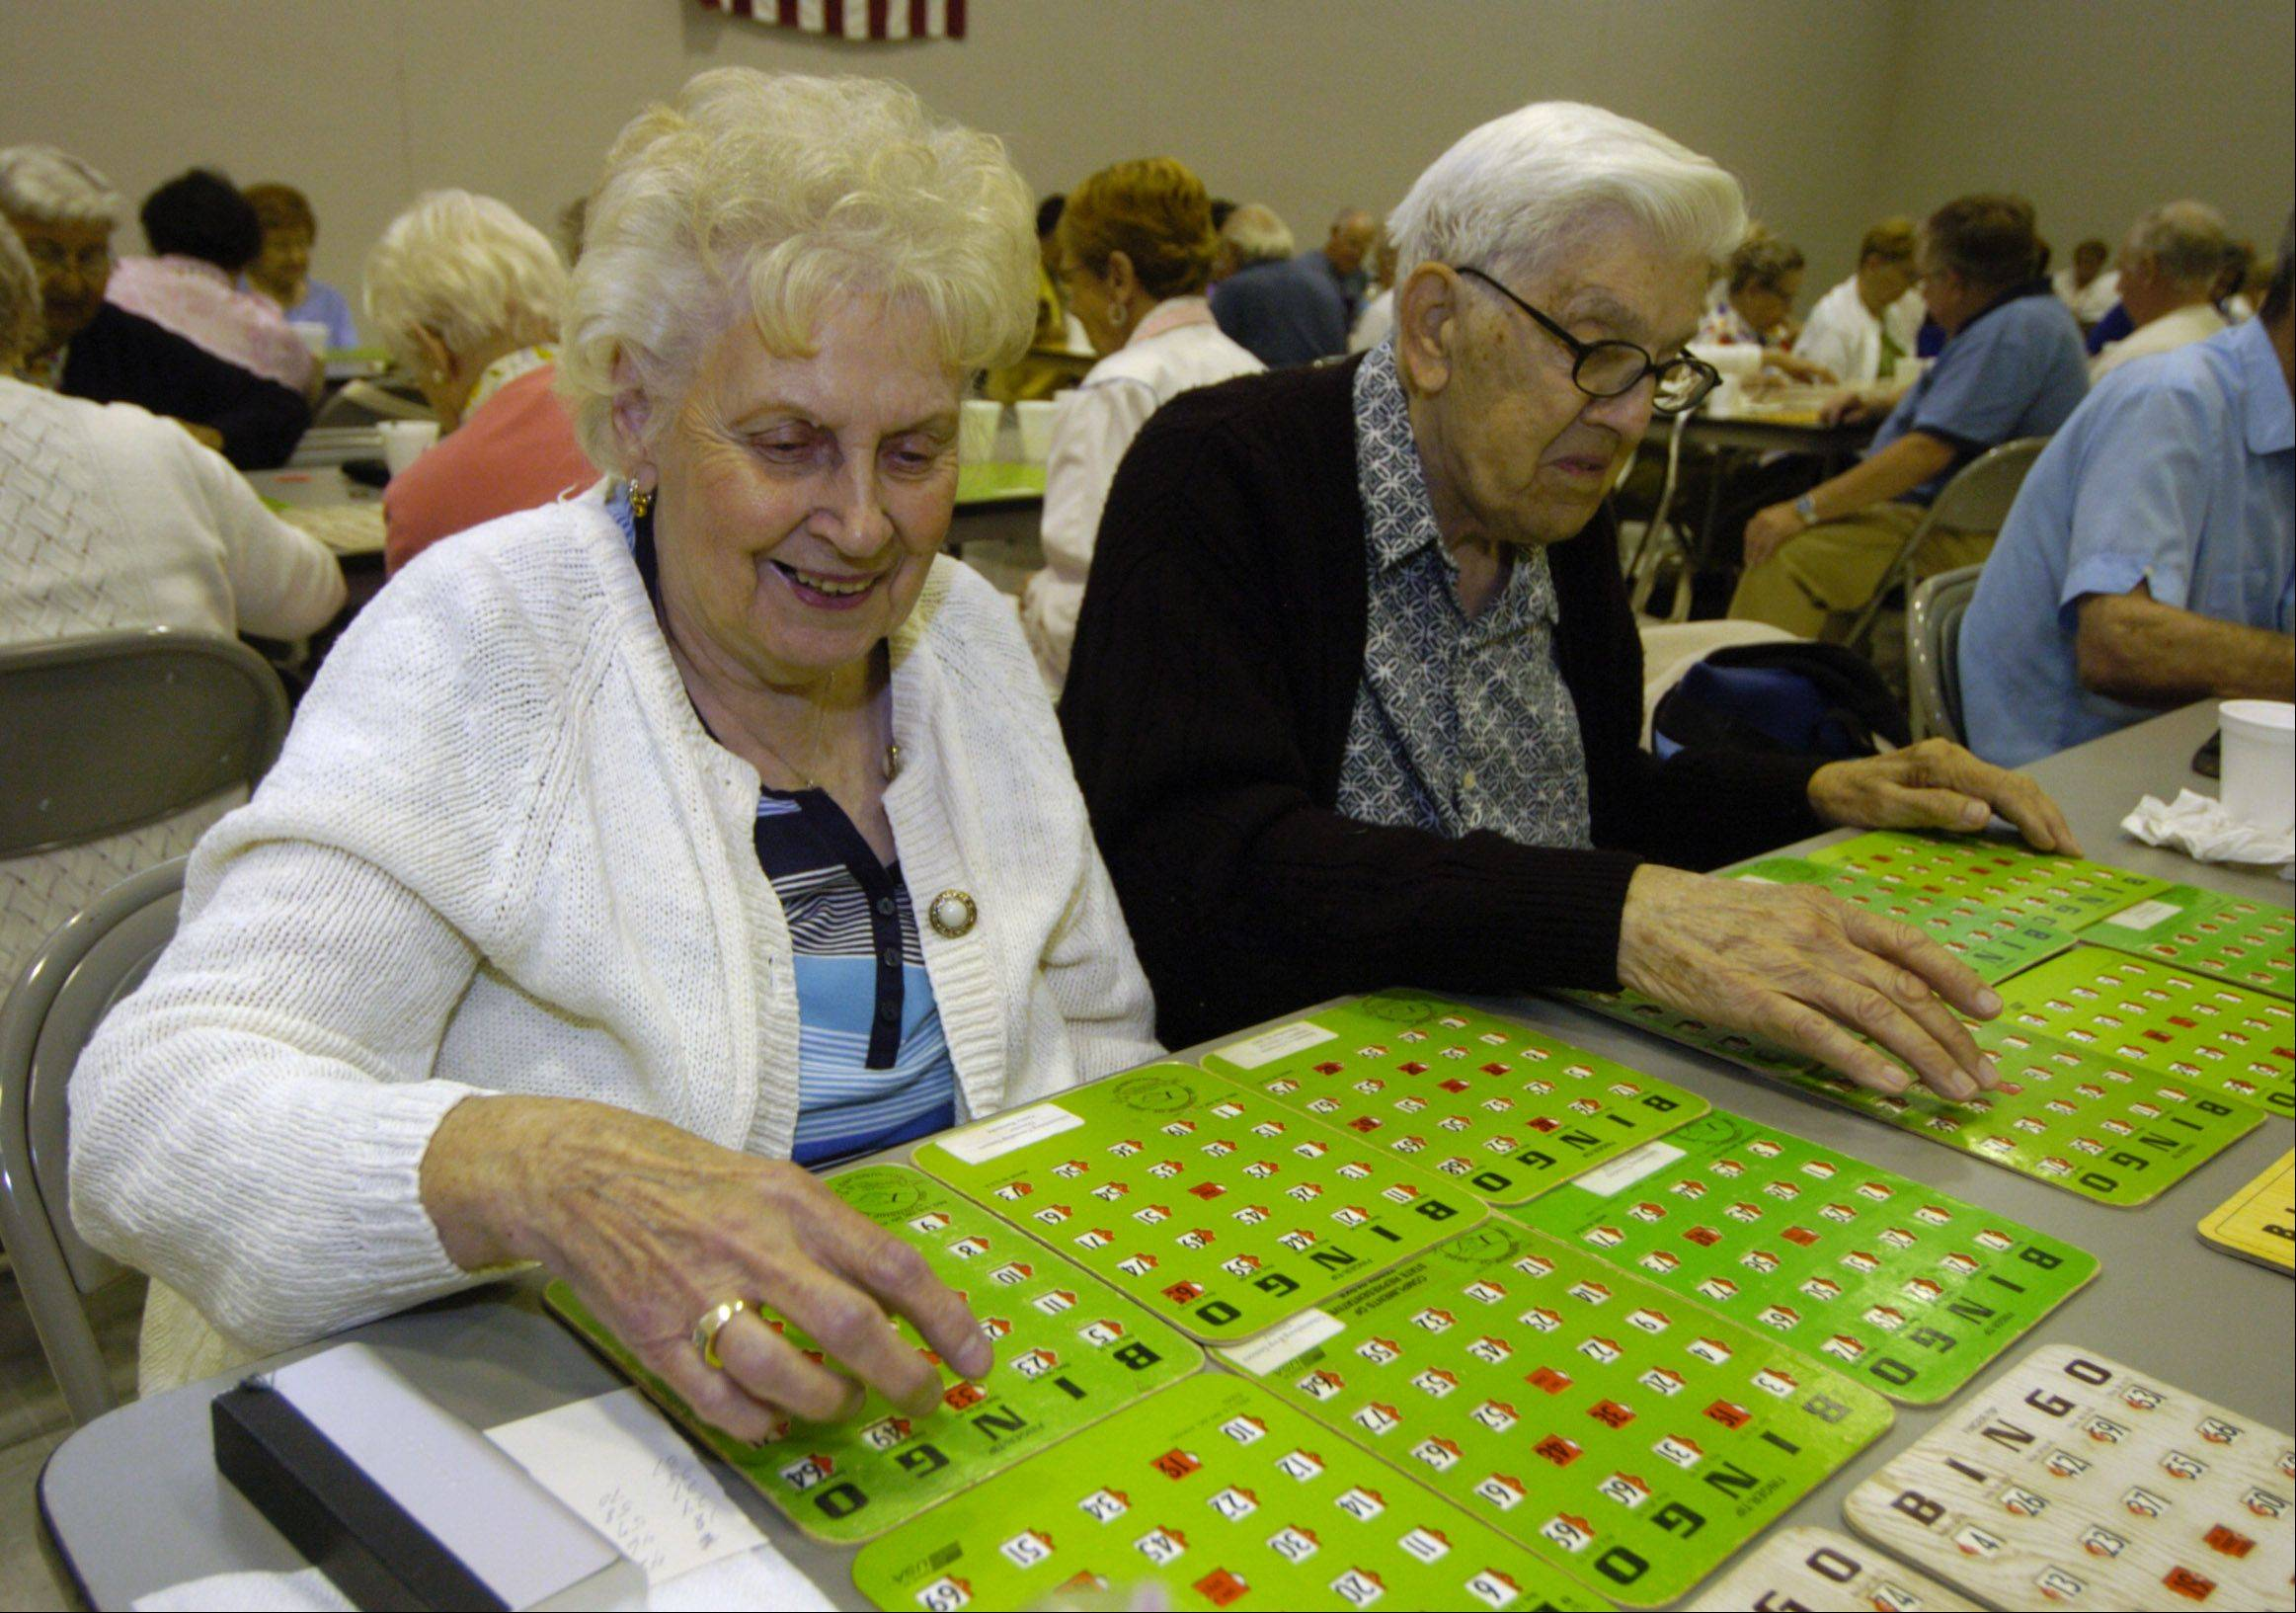 Dorothy Swiatek of Schaumburg and her husband, Henry, are among a group of seniors playing their weekly bingo game in the air-conditioned comfort of Schaumburg Township Hall Thursday.